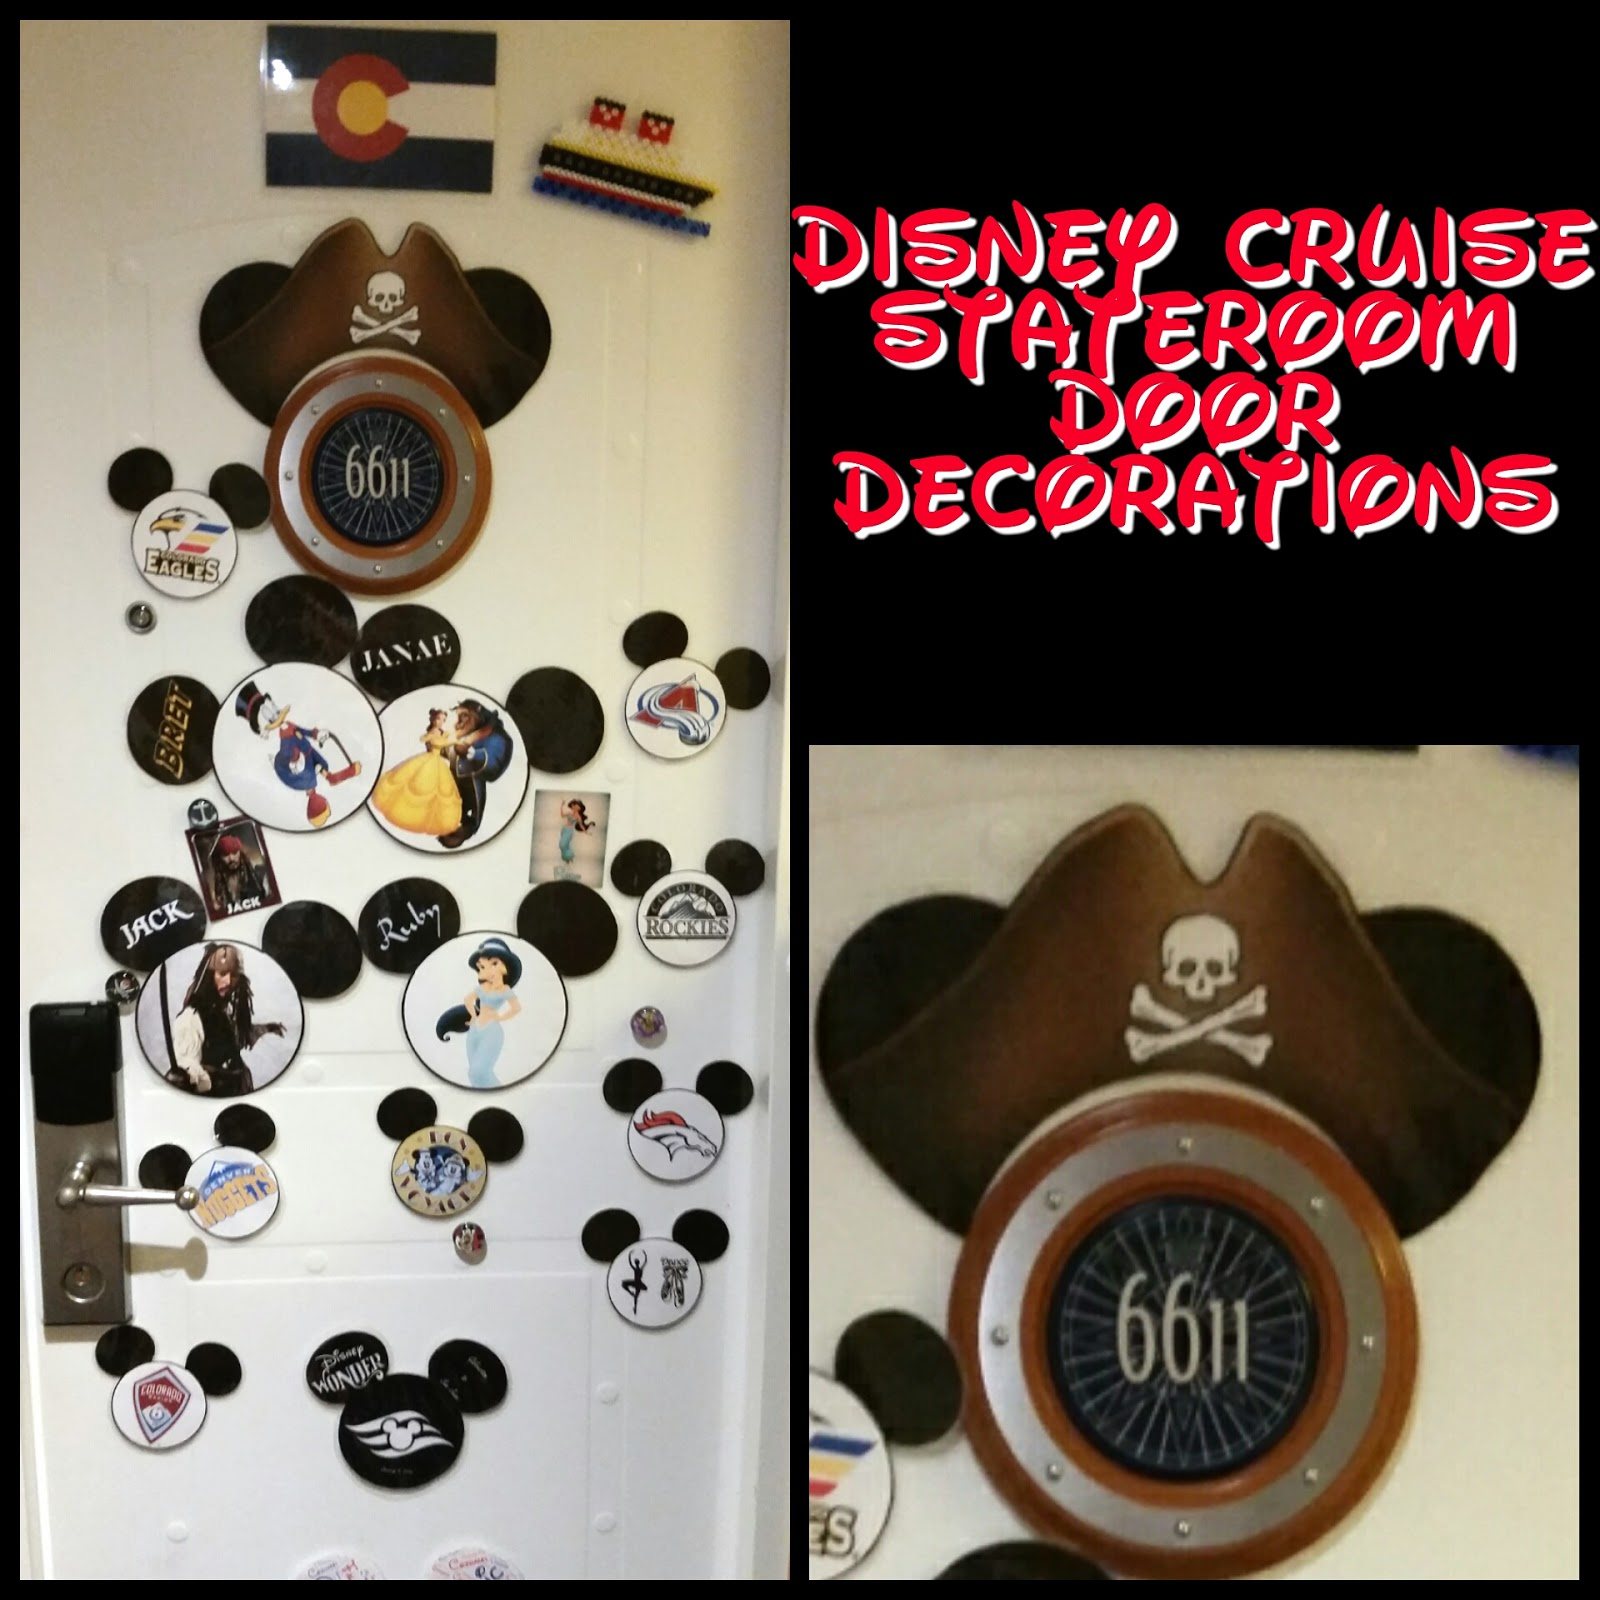 image about Disney Cruise Door Decorations Printable referred to as √ Printable Disney Cruise Doorway Decorations